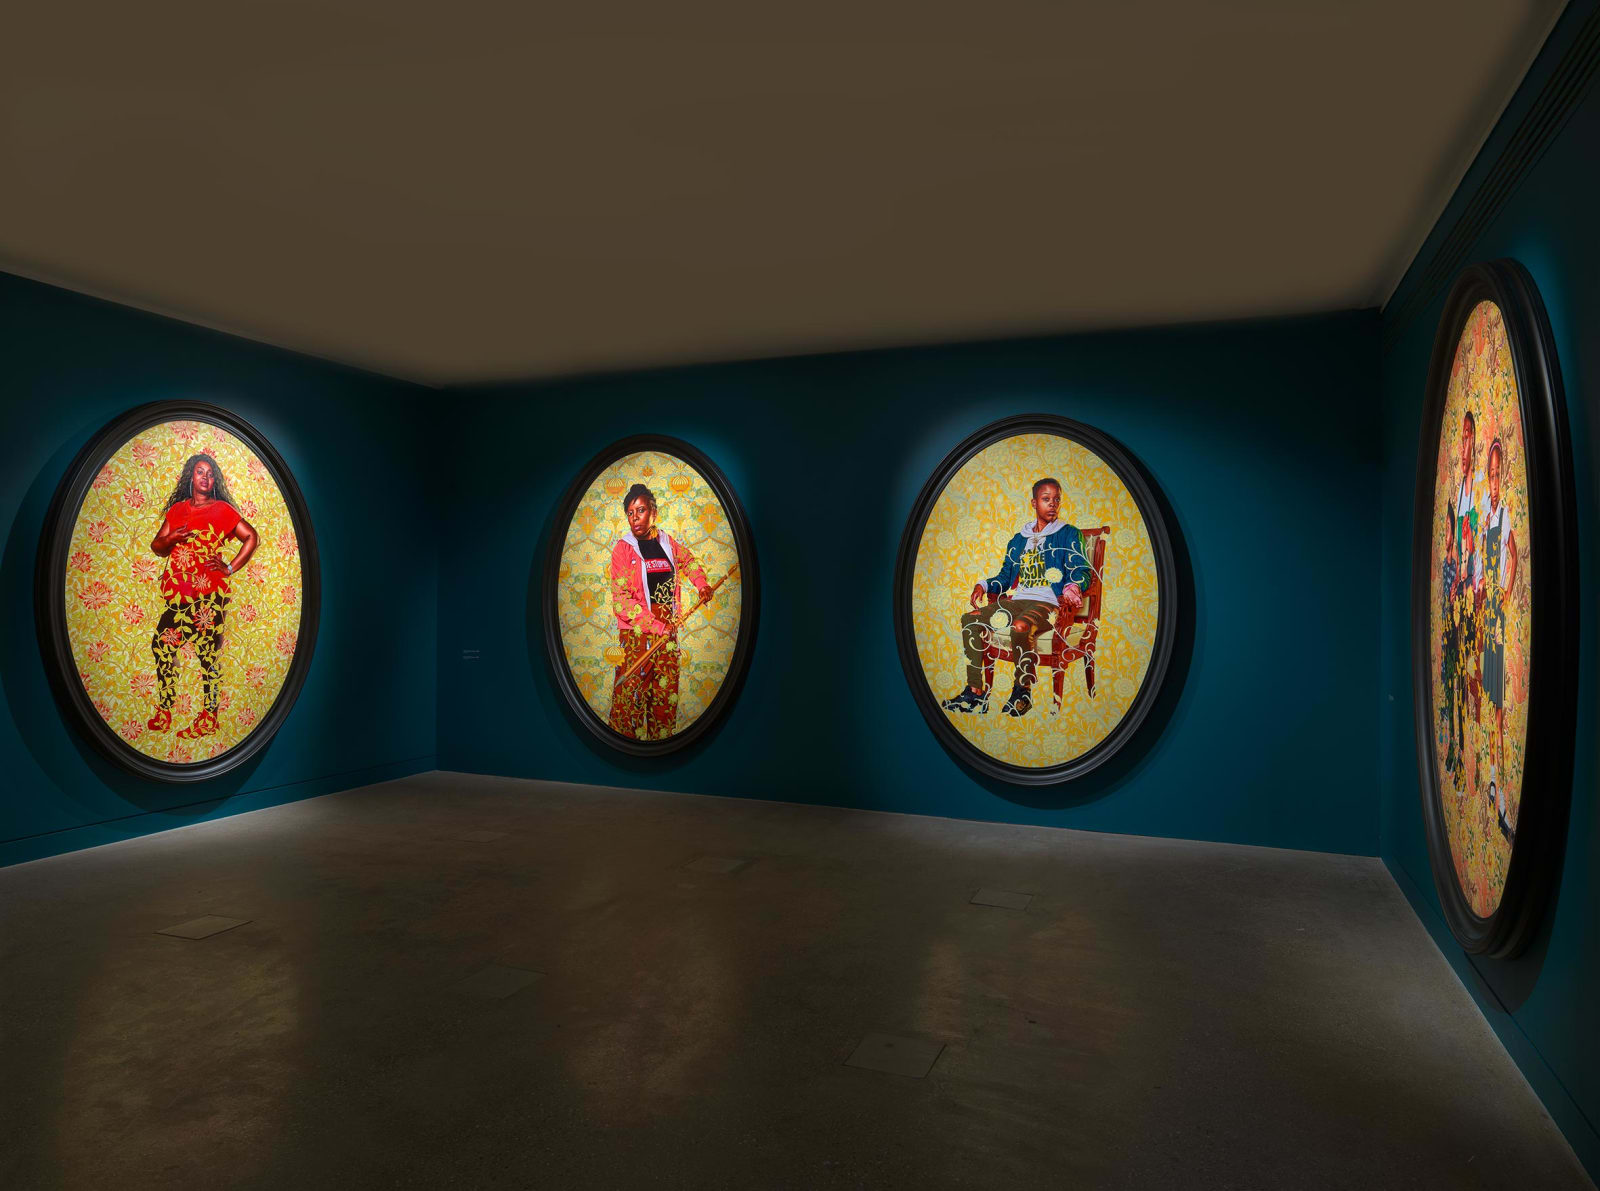 <p>Installation view: 'The Yellow Wallpaper', William Morris Gallery, London (2020)</p>